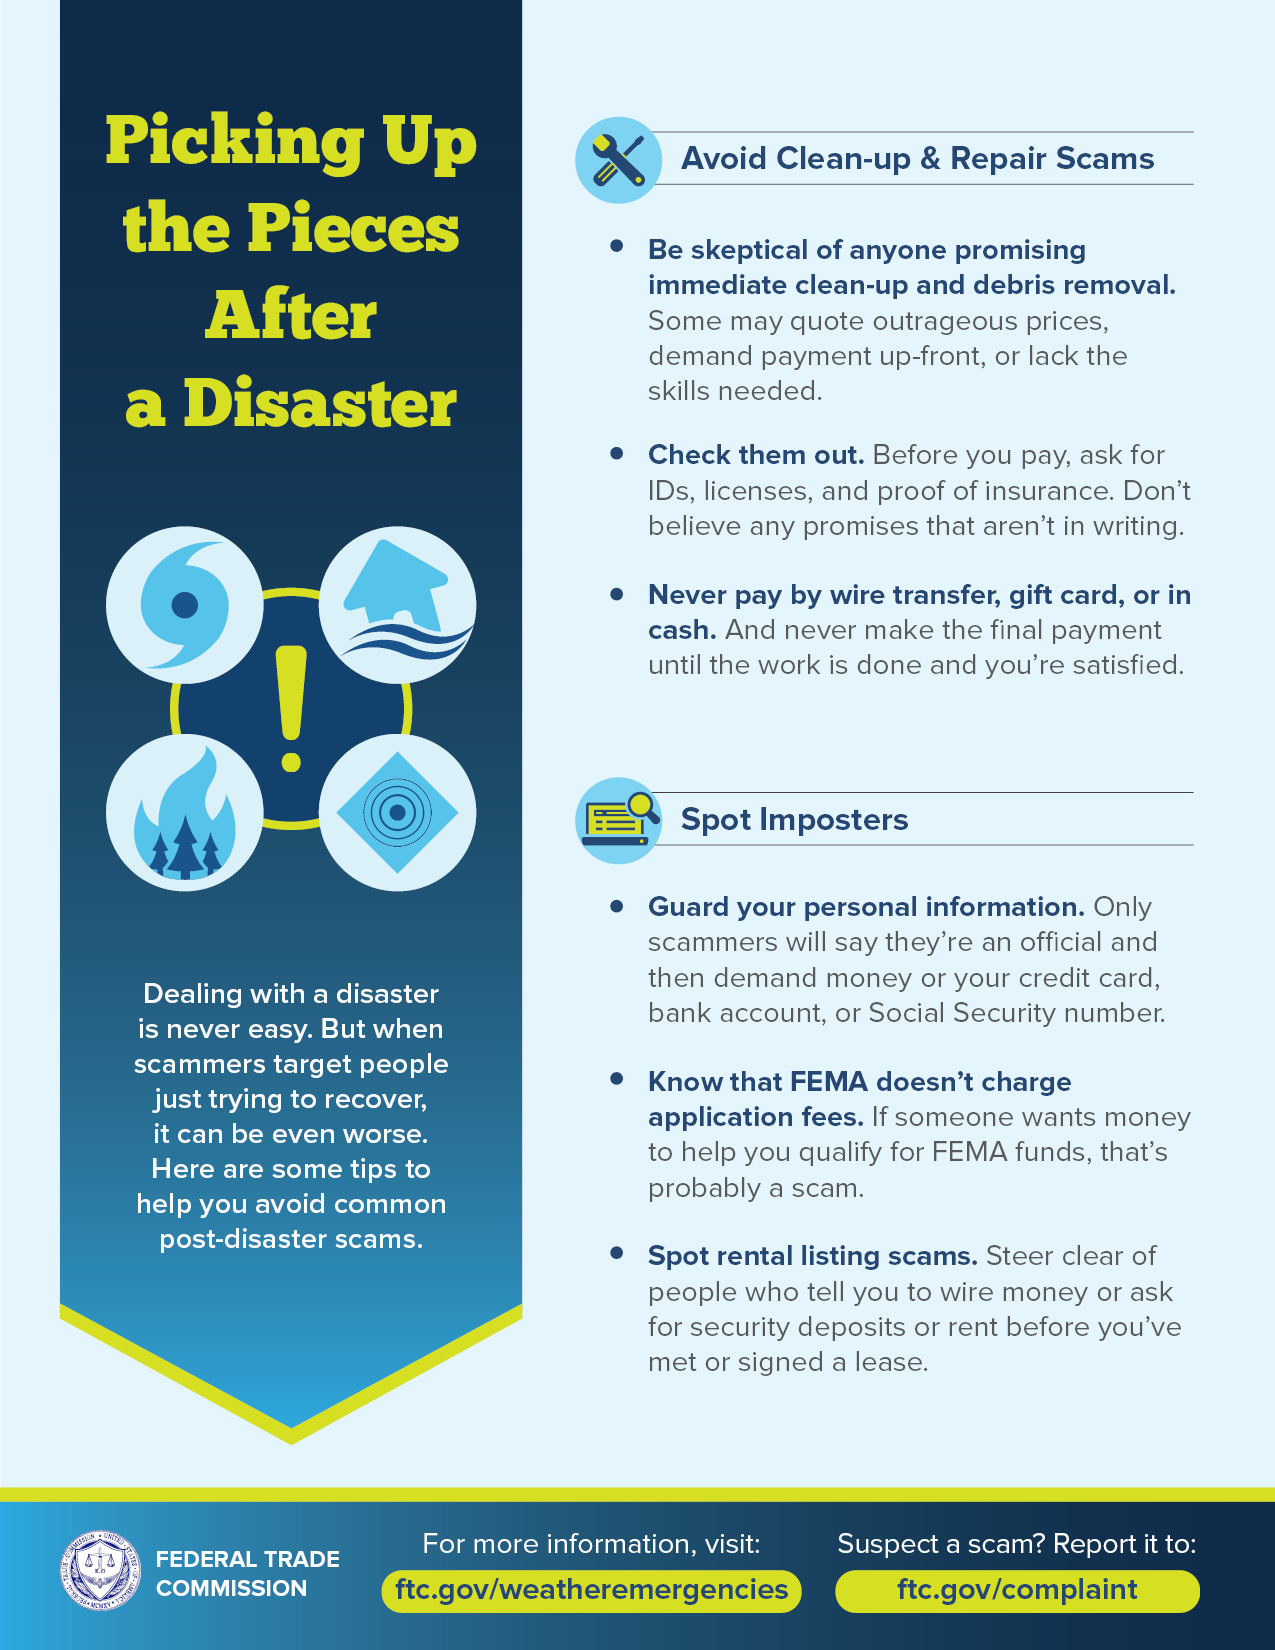 FTC disaster recovery scams